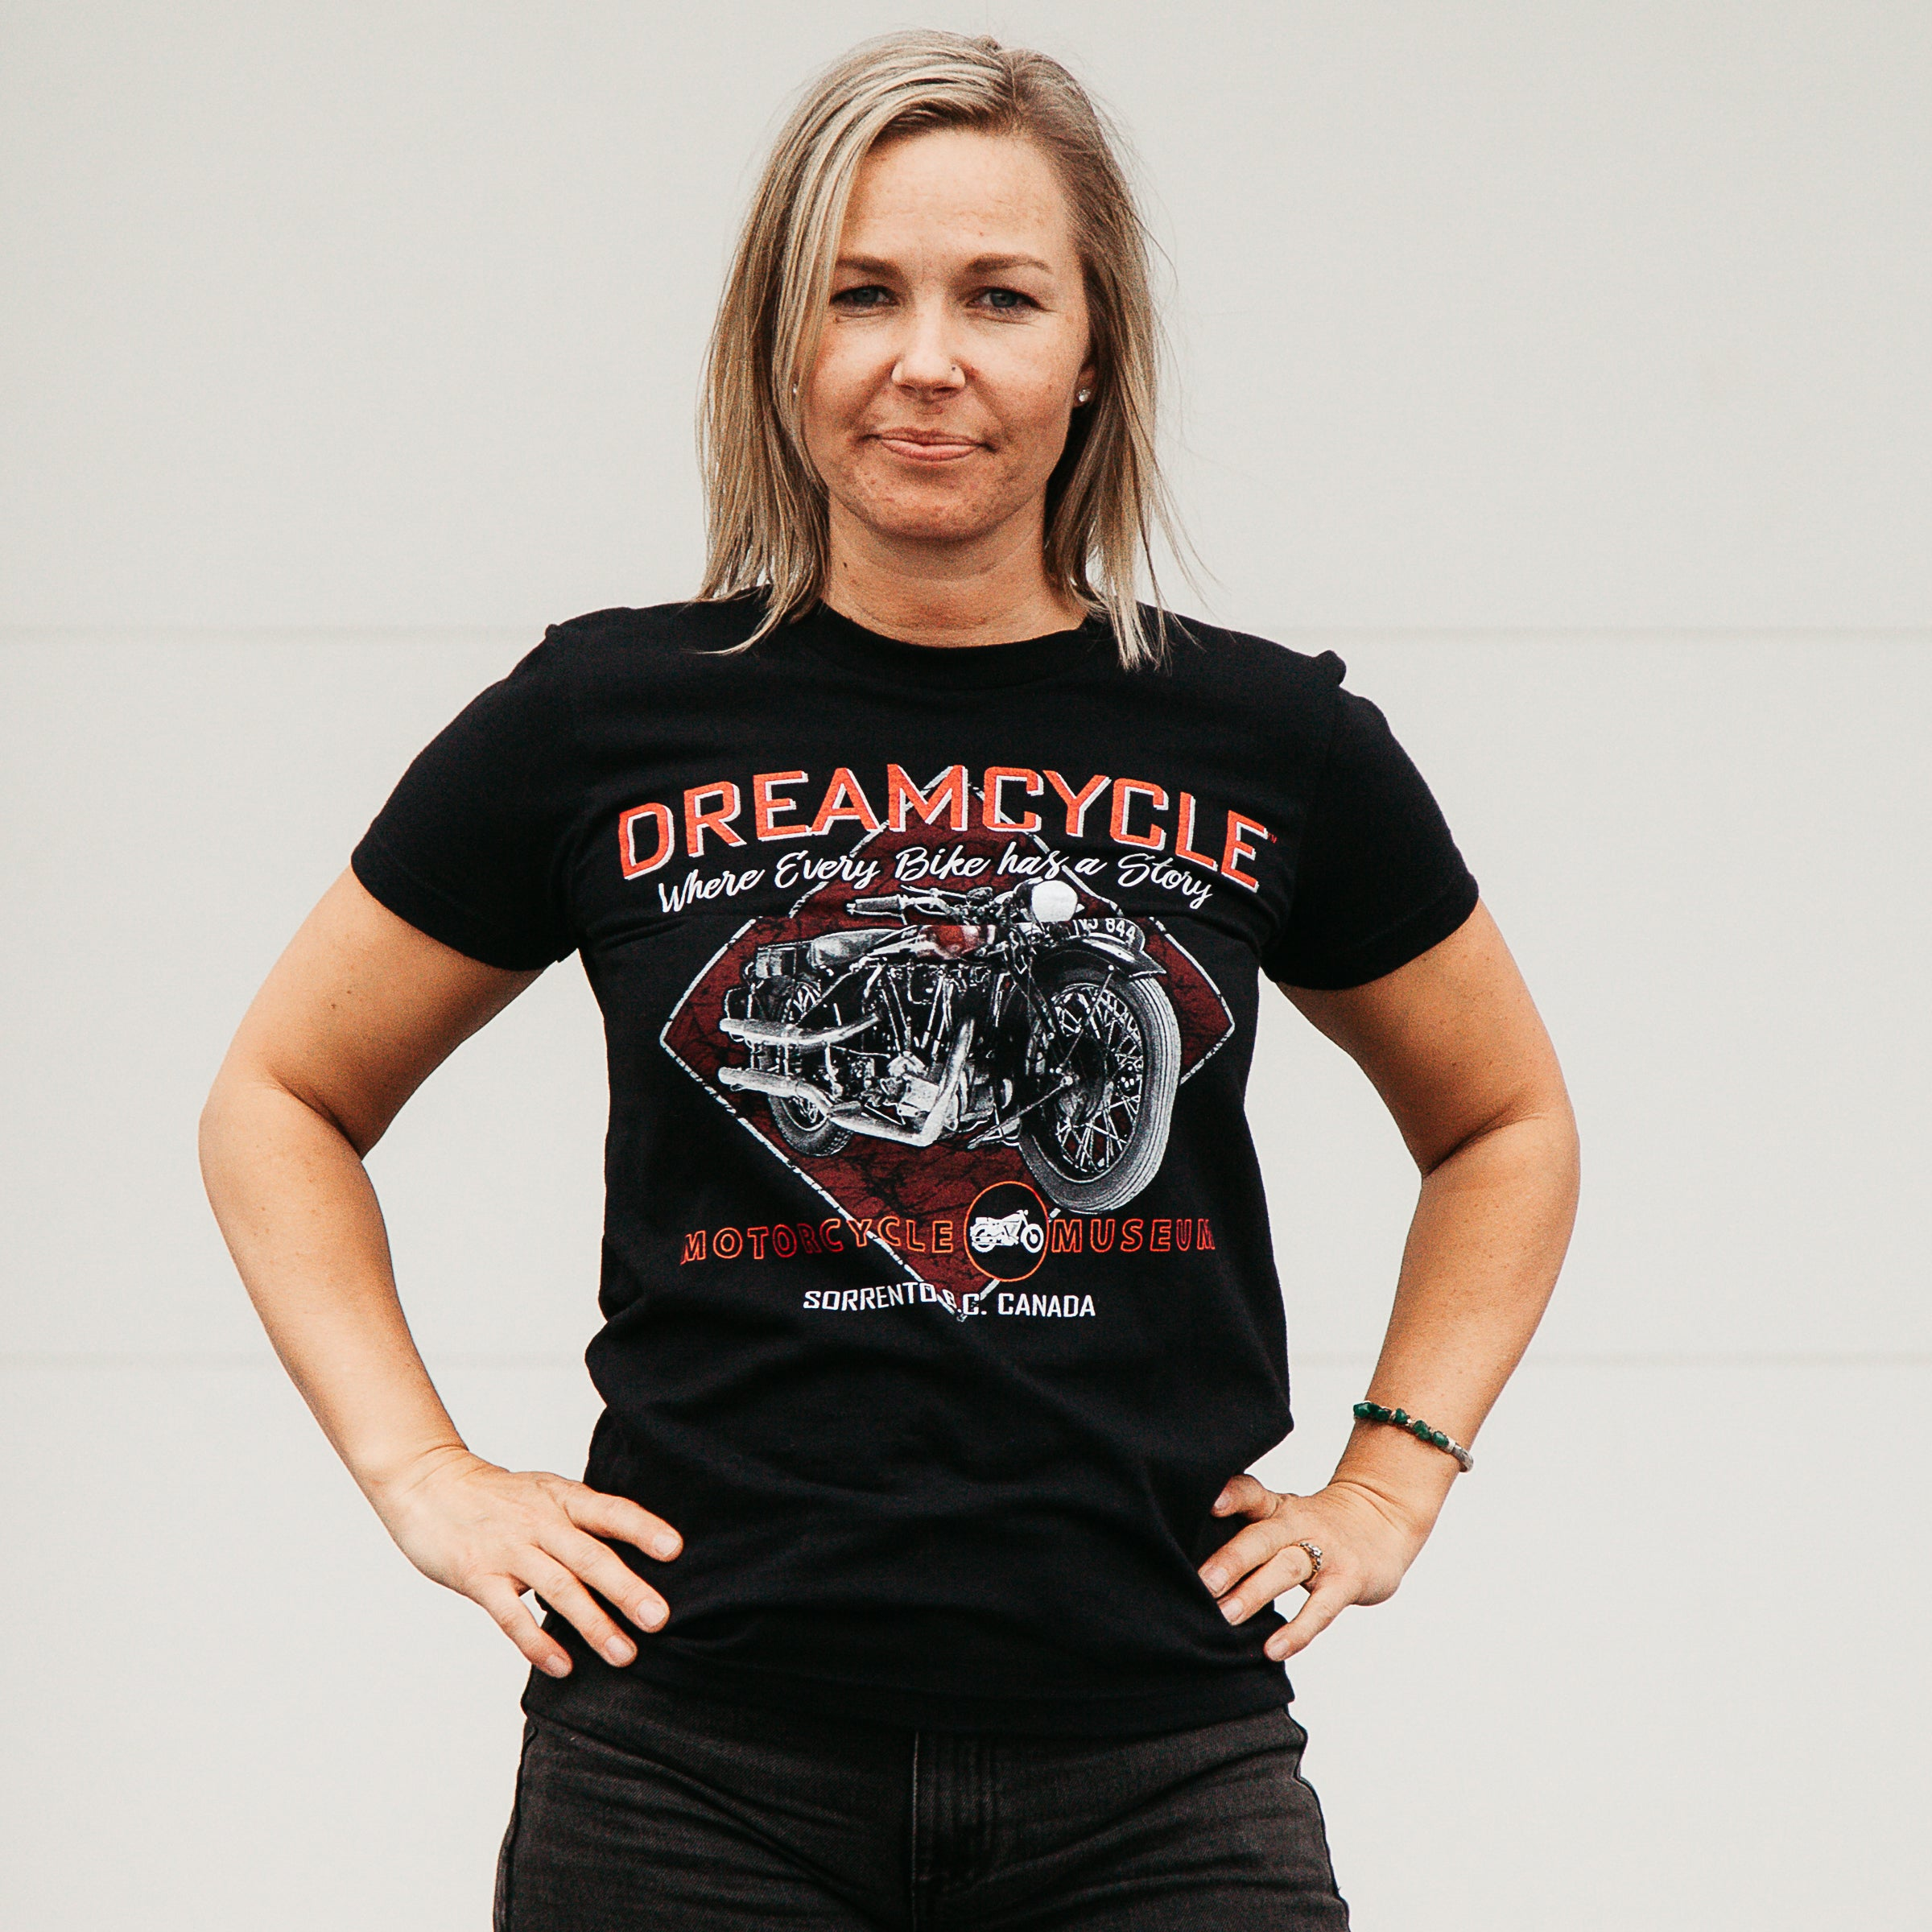 Dreamcycle Motorcycle Museum |  Dreamcycle womens tshirt modelled in lifestyle setting.